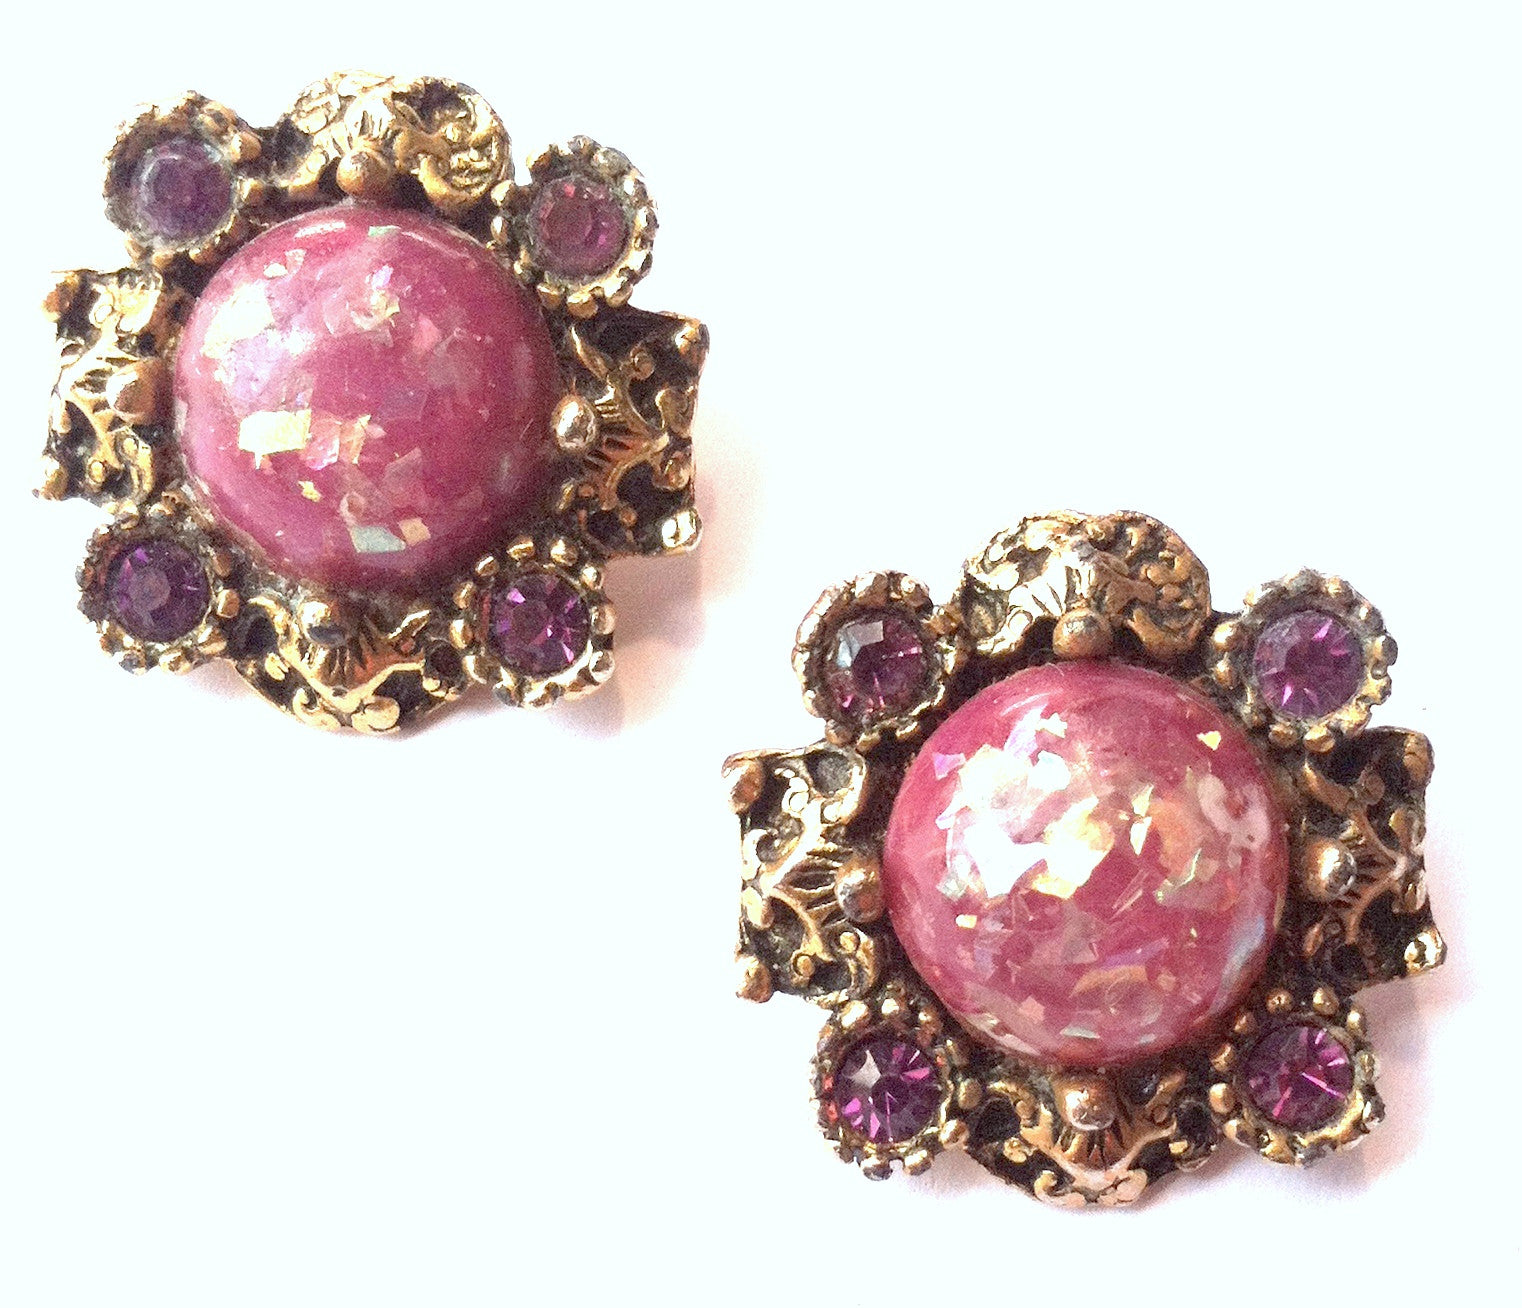 Glittery Rosy Violet Cabochon Clip Earrings circa 1940s